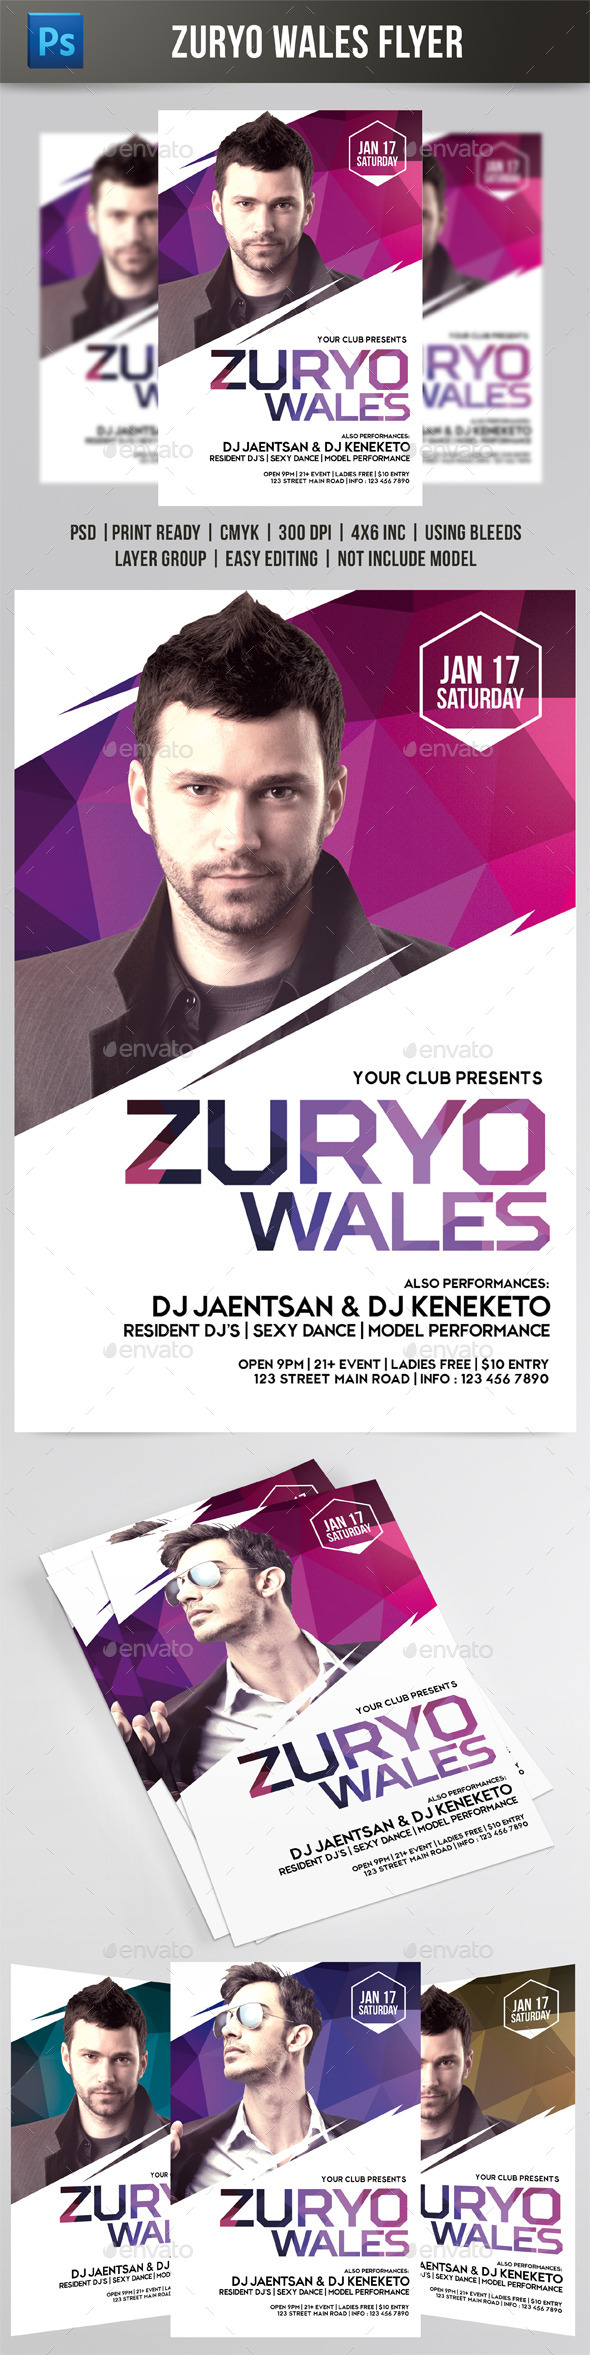 Zuryo Wales Flyer - Events Flyers